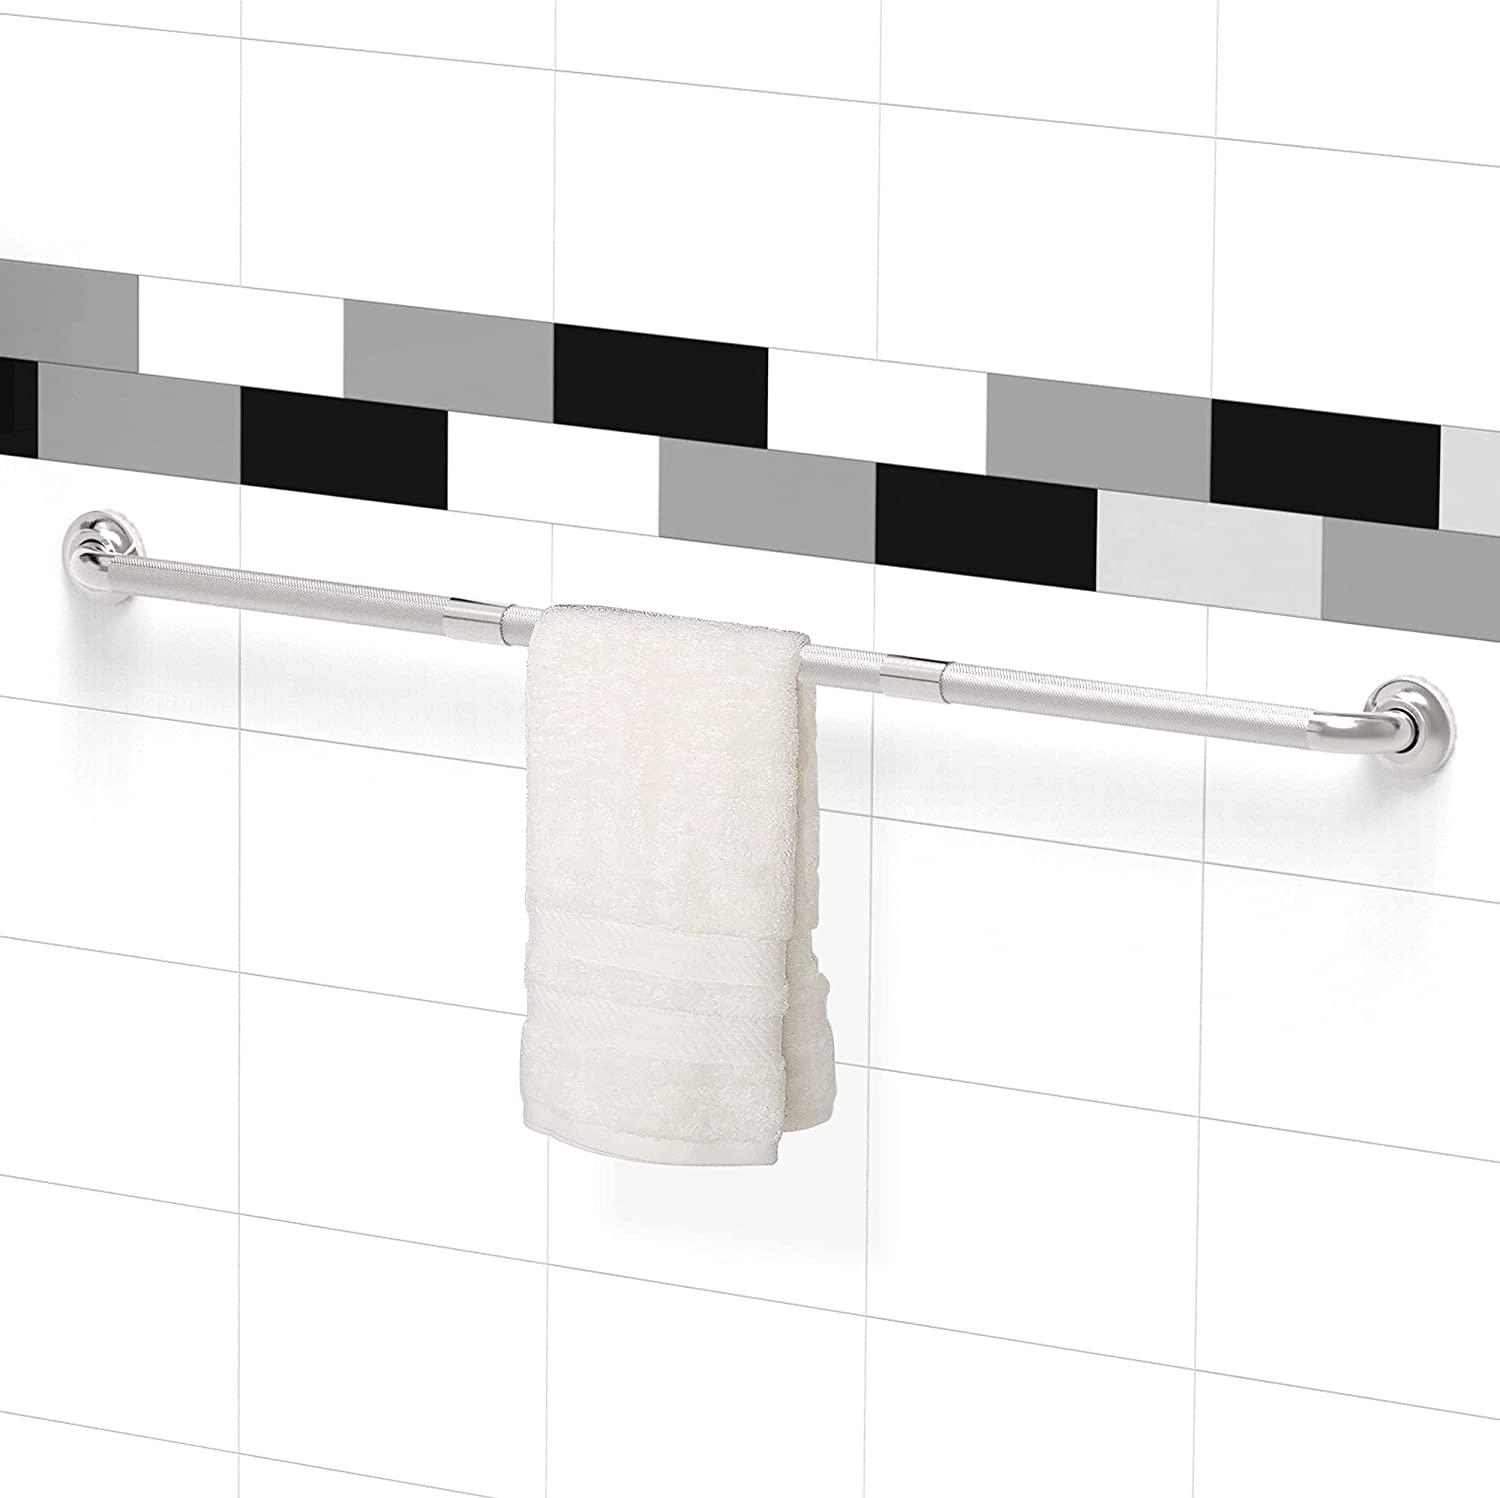 service AmeriLuck 48 Ranking integrated 1st place inch Safety Grab Bar Grip A with Knurled Anti-Slip